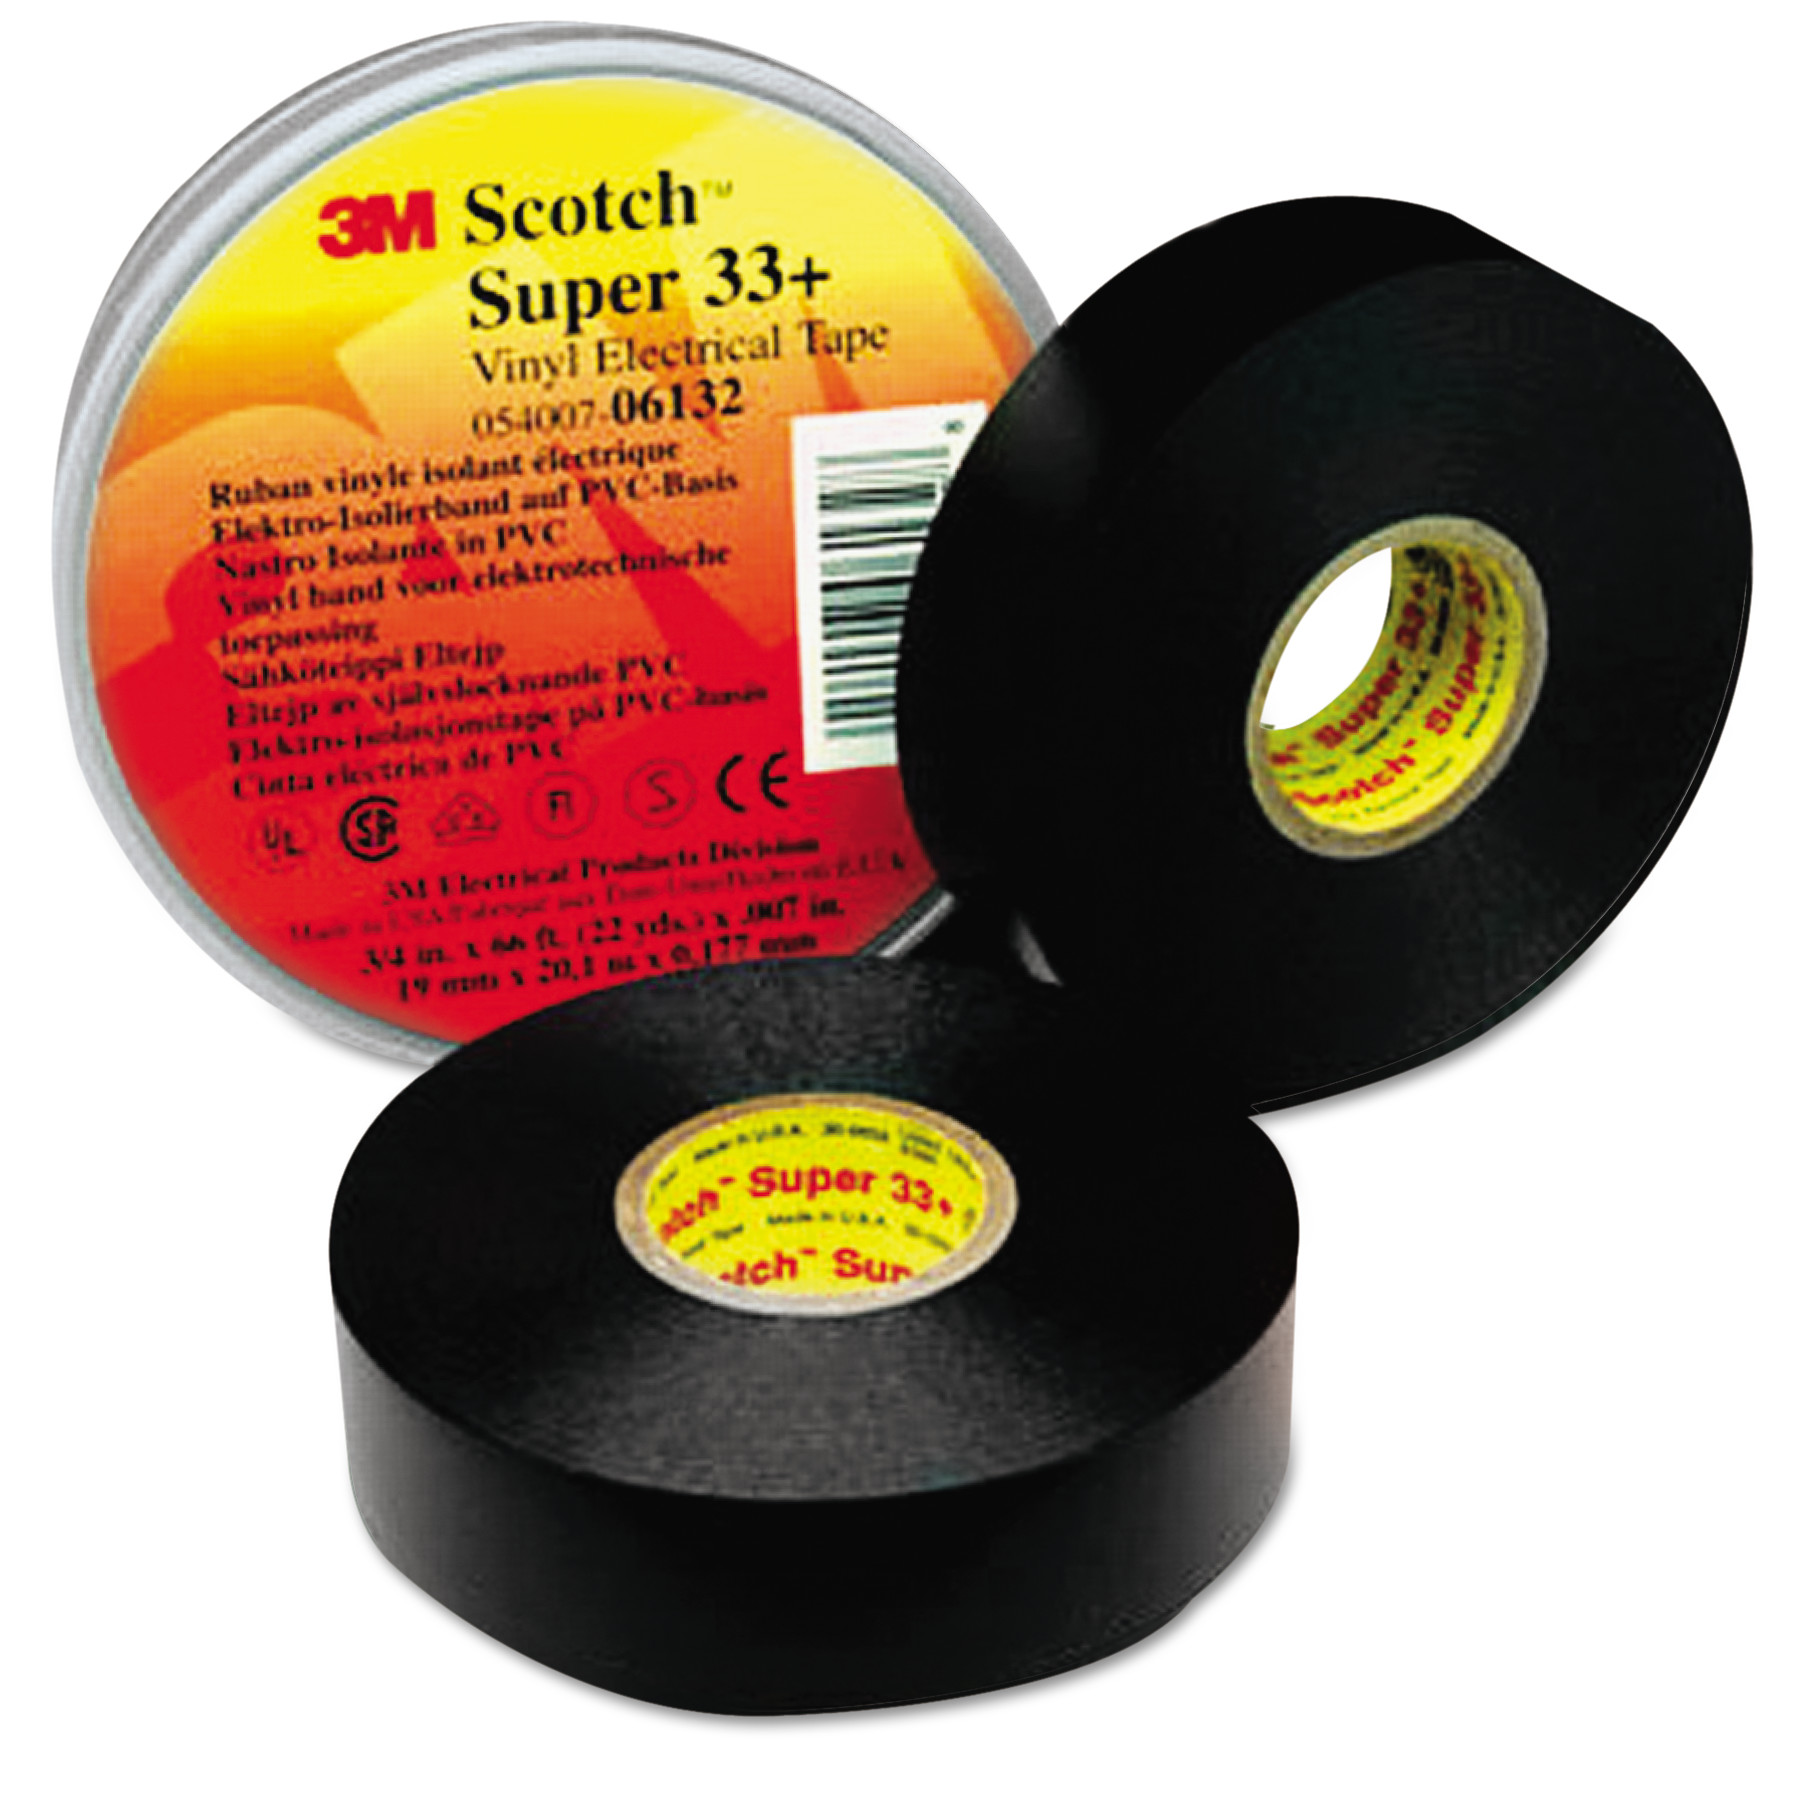 "3M Scotch 33+ Super Vinyl Electrical Tape, 3/4"" x 52ft"